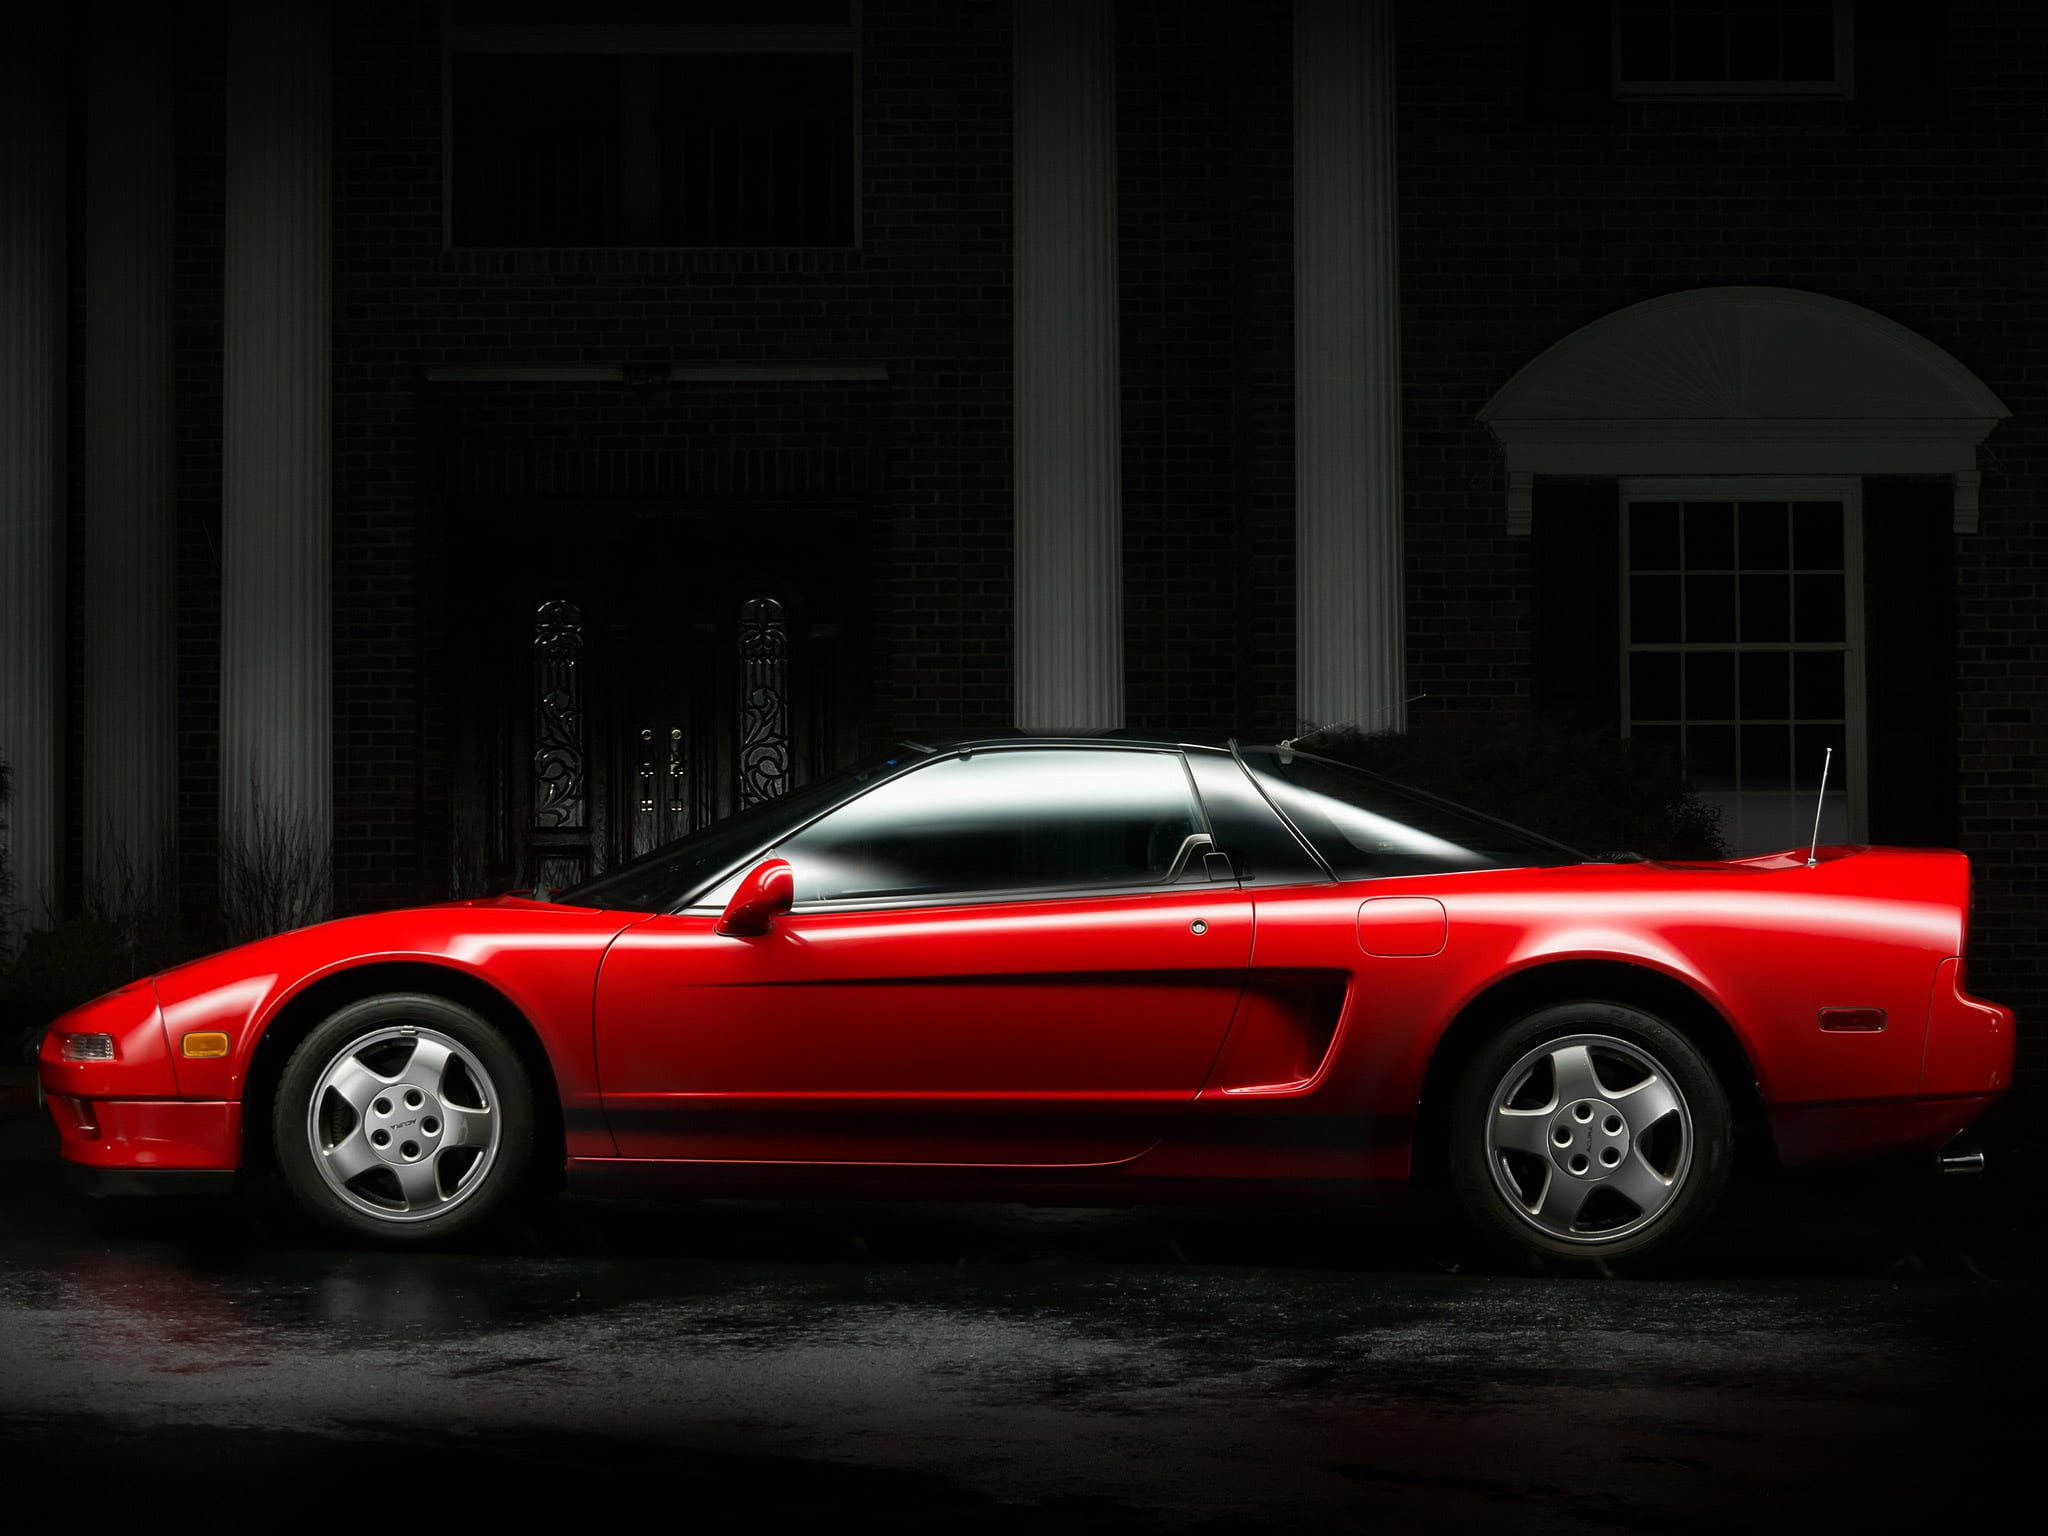 1991 Acura NSX side view